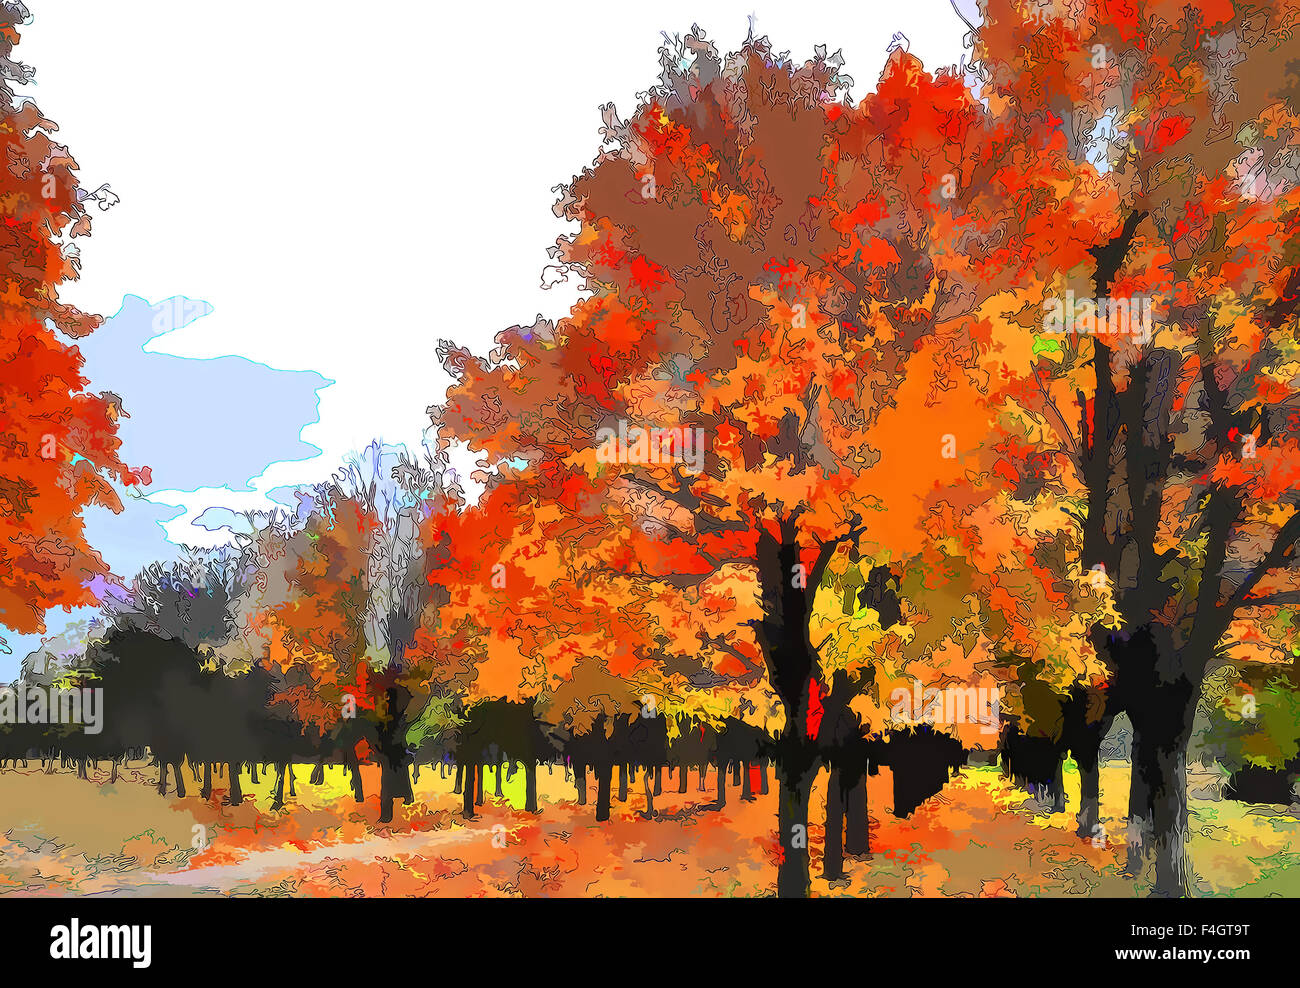 Art autumn landscape as oil painting. Grunge picture showing trees. - Stock Image